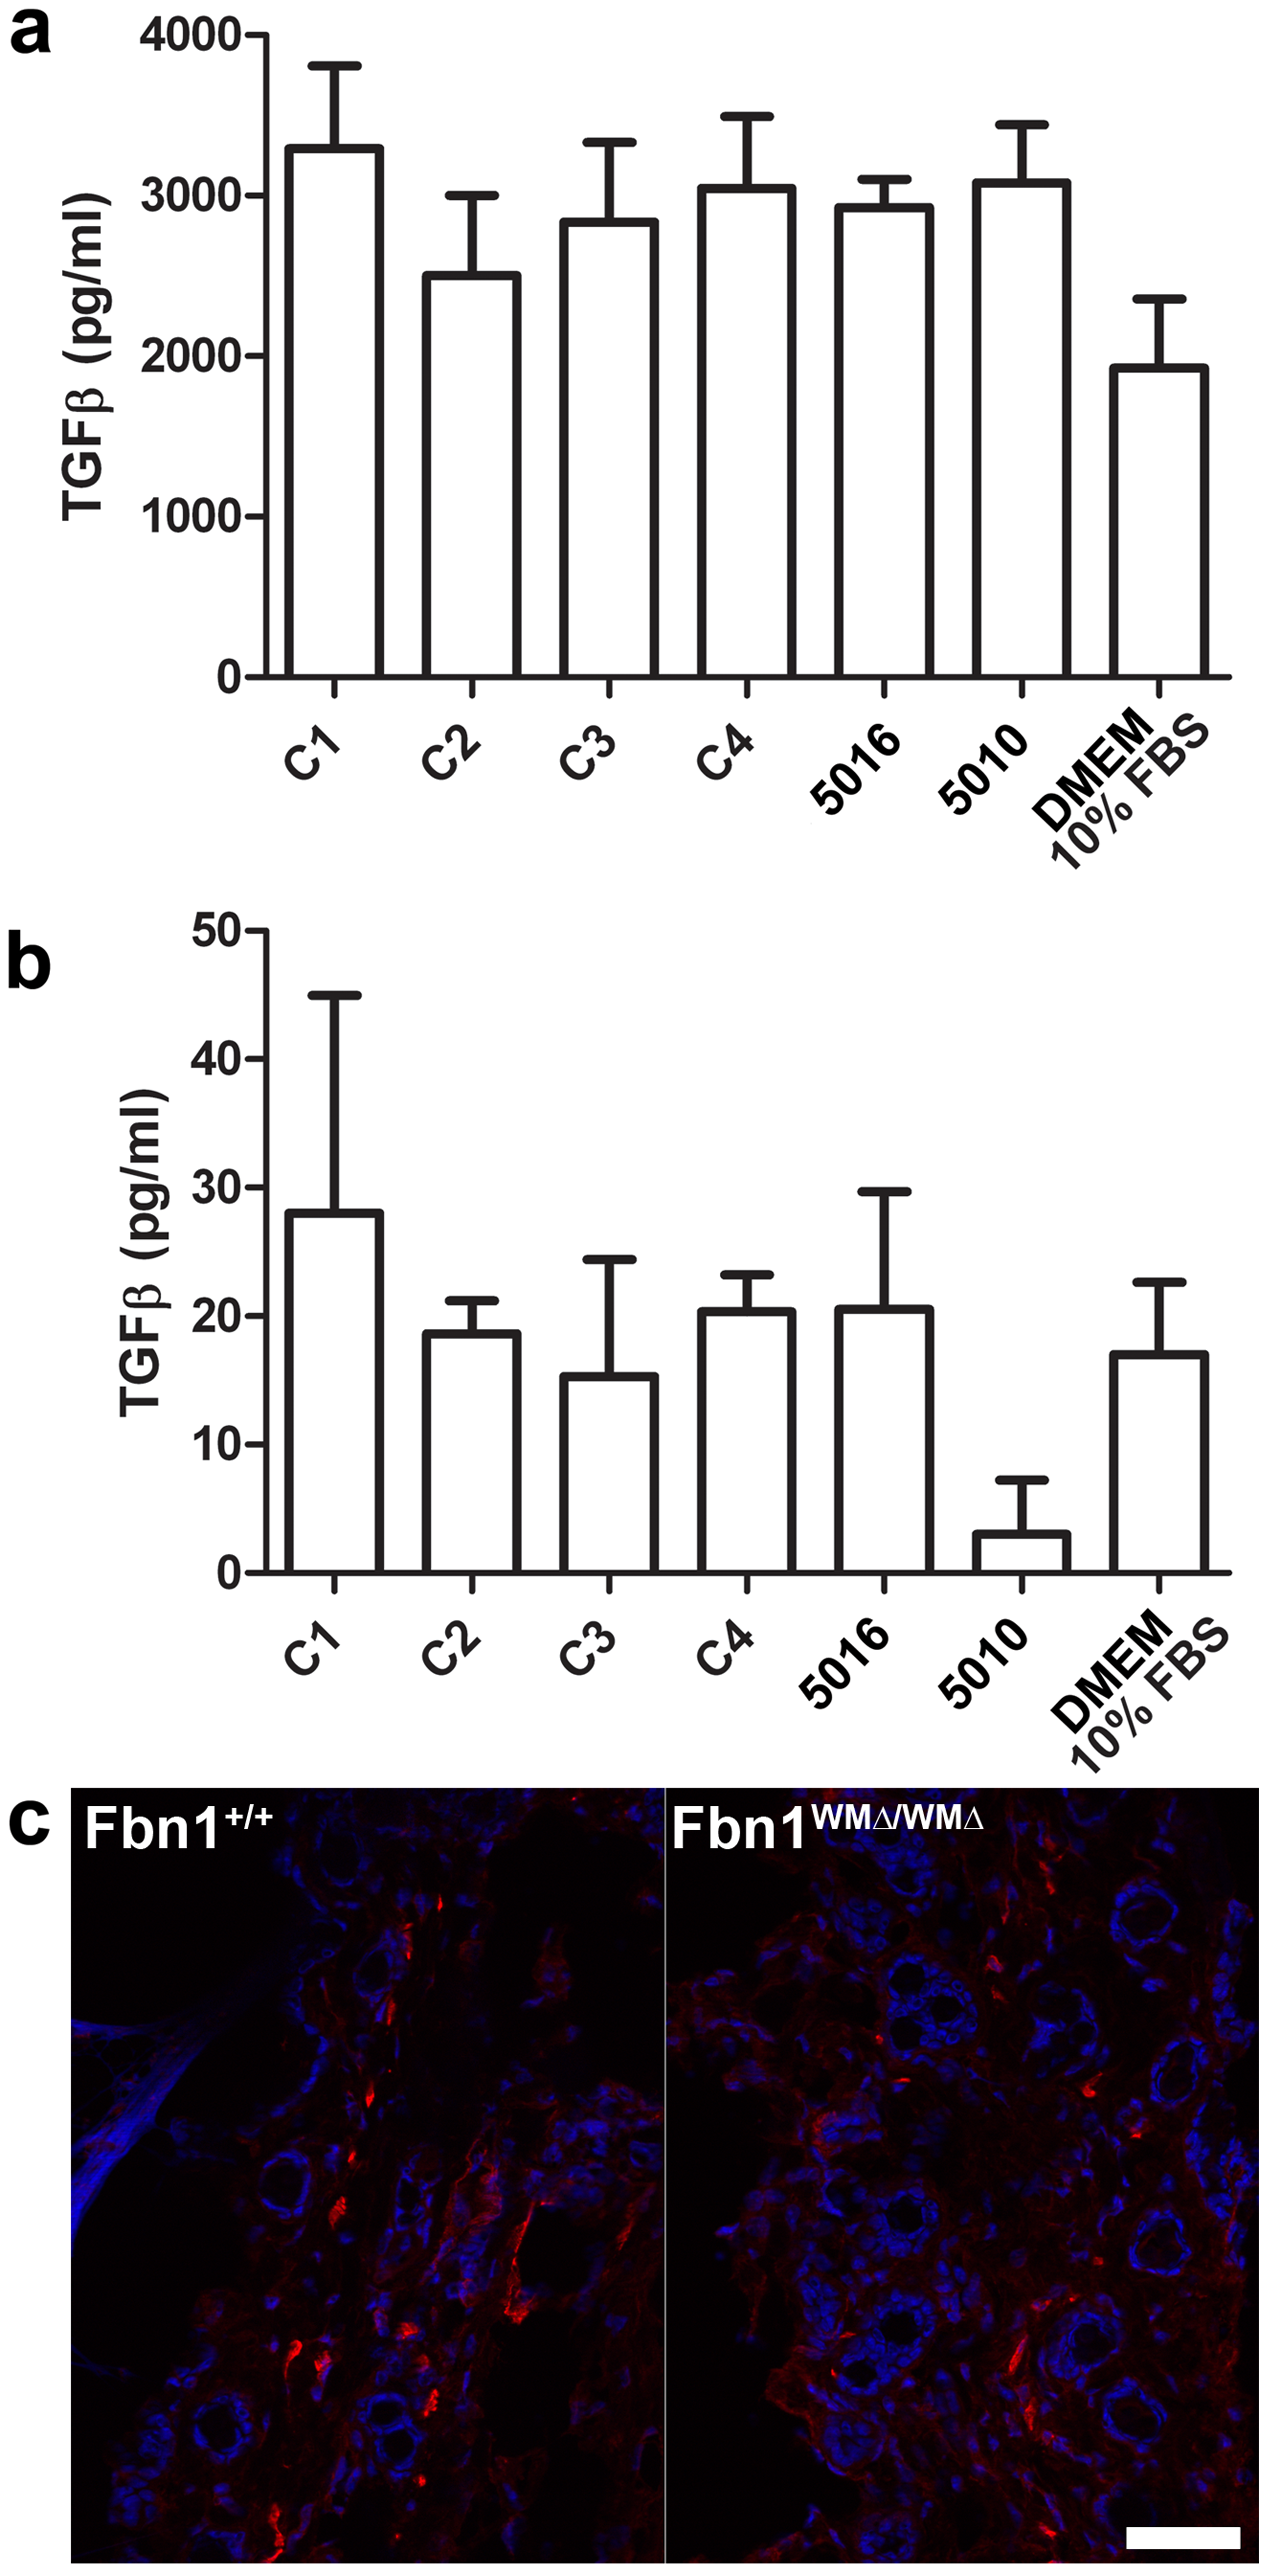 Measurements of TGF-β in cultured fibroblasts; α-smooth muscle actin staining.